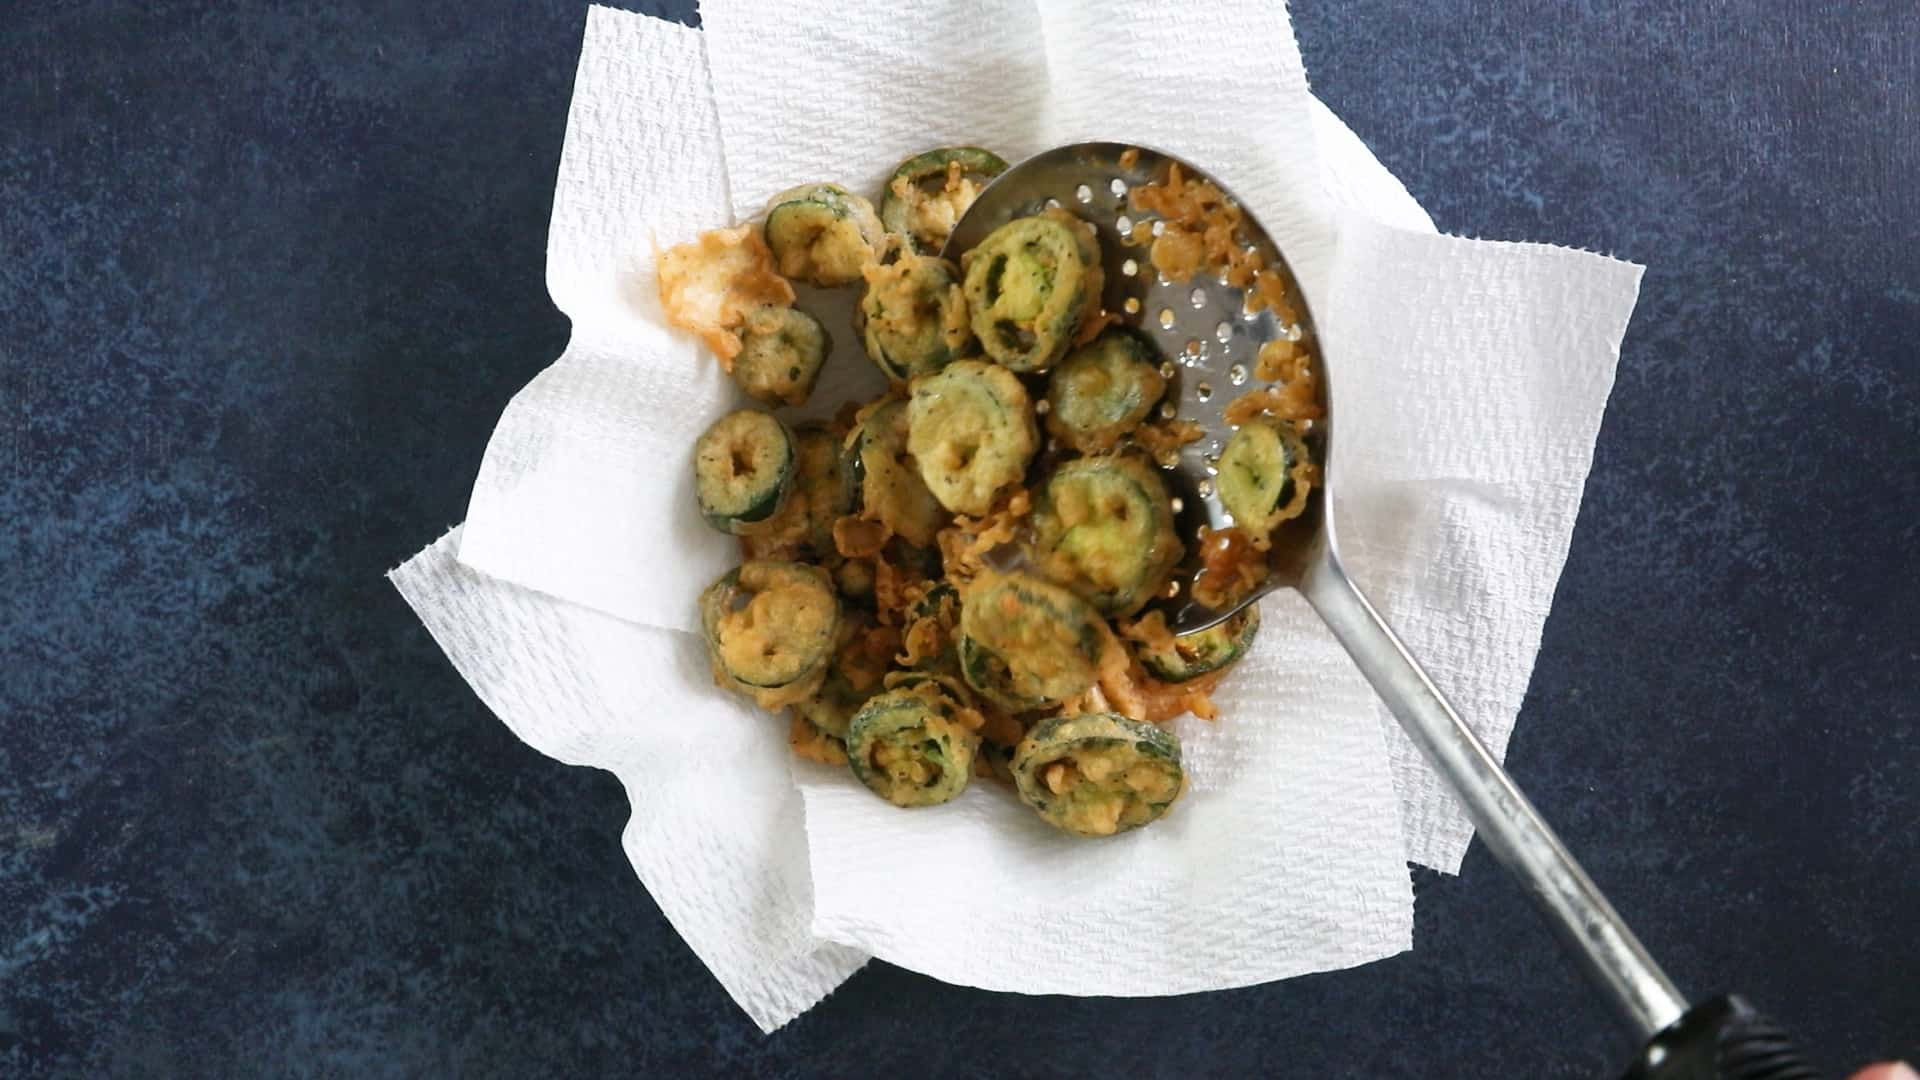 Drain the fried jalapeno peppers on paper towels